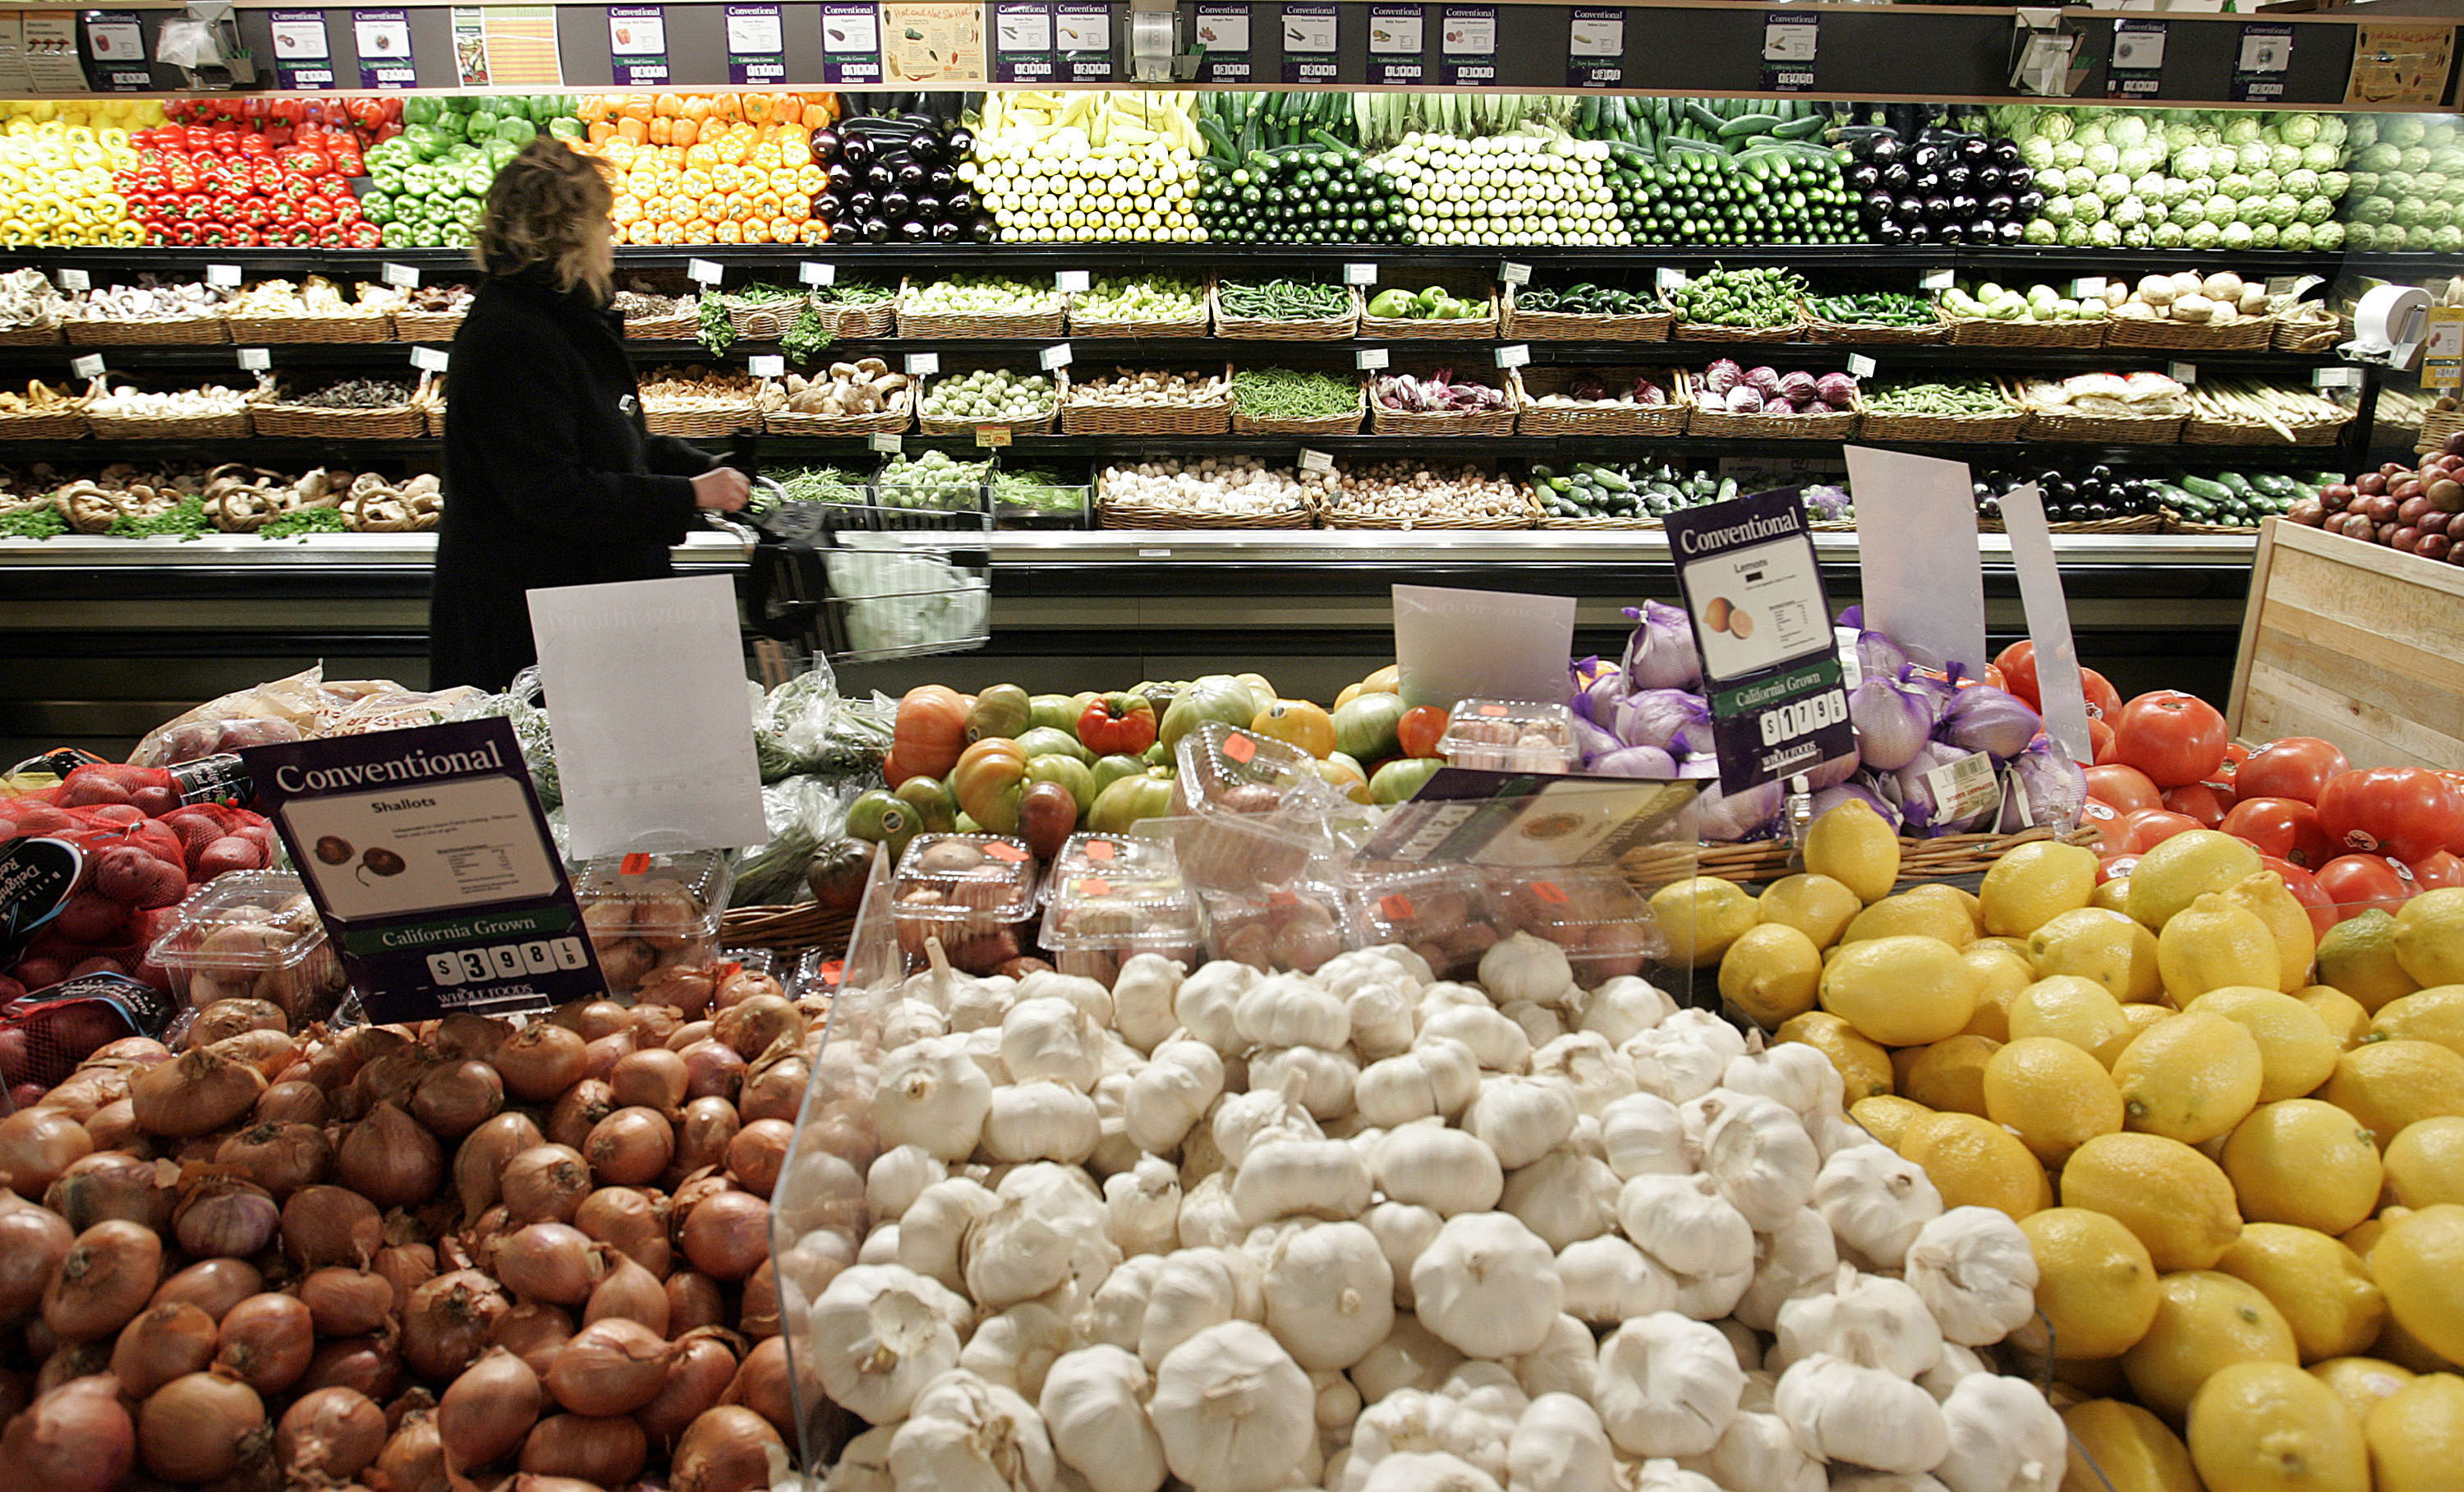 NEW YORK - JANUARY 13: A woman shops in the produce section at Whole Foods (Photo by Stephen Chernin/Getty Images)